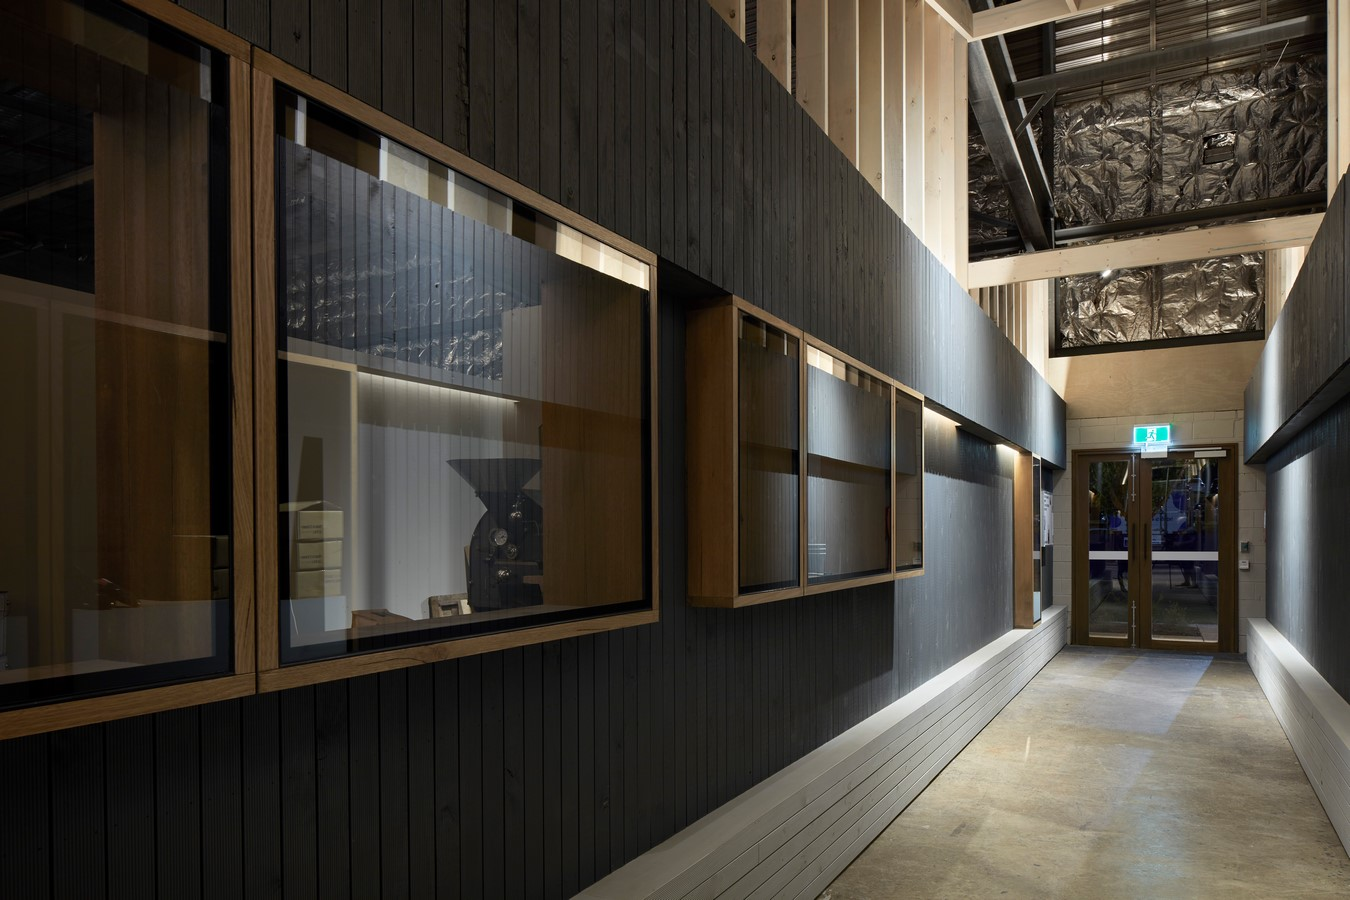 Dairy Road Building 3.4 by Craig Tan Architects - Sheet2